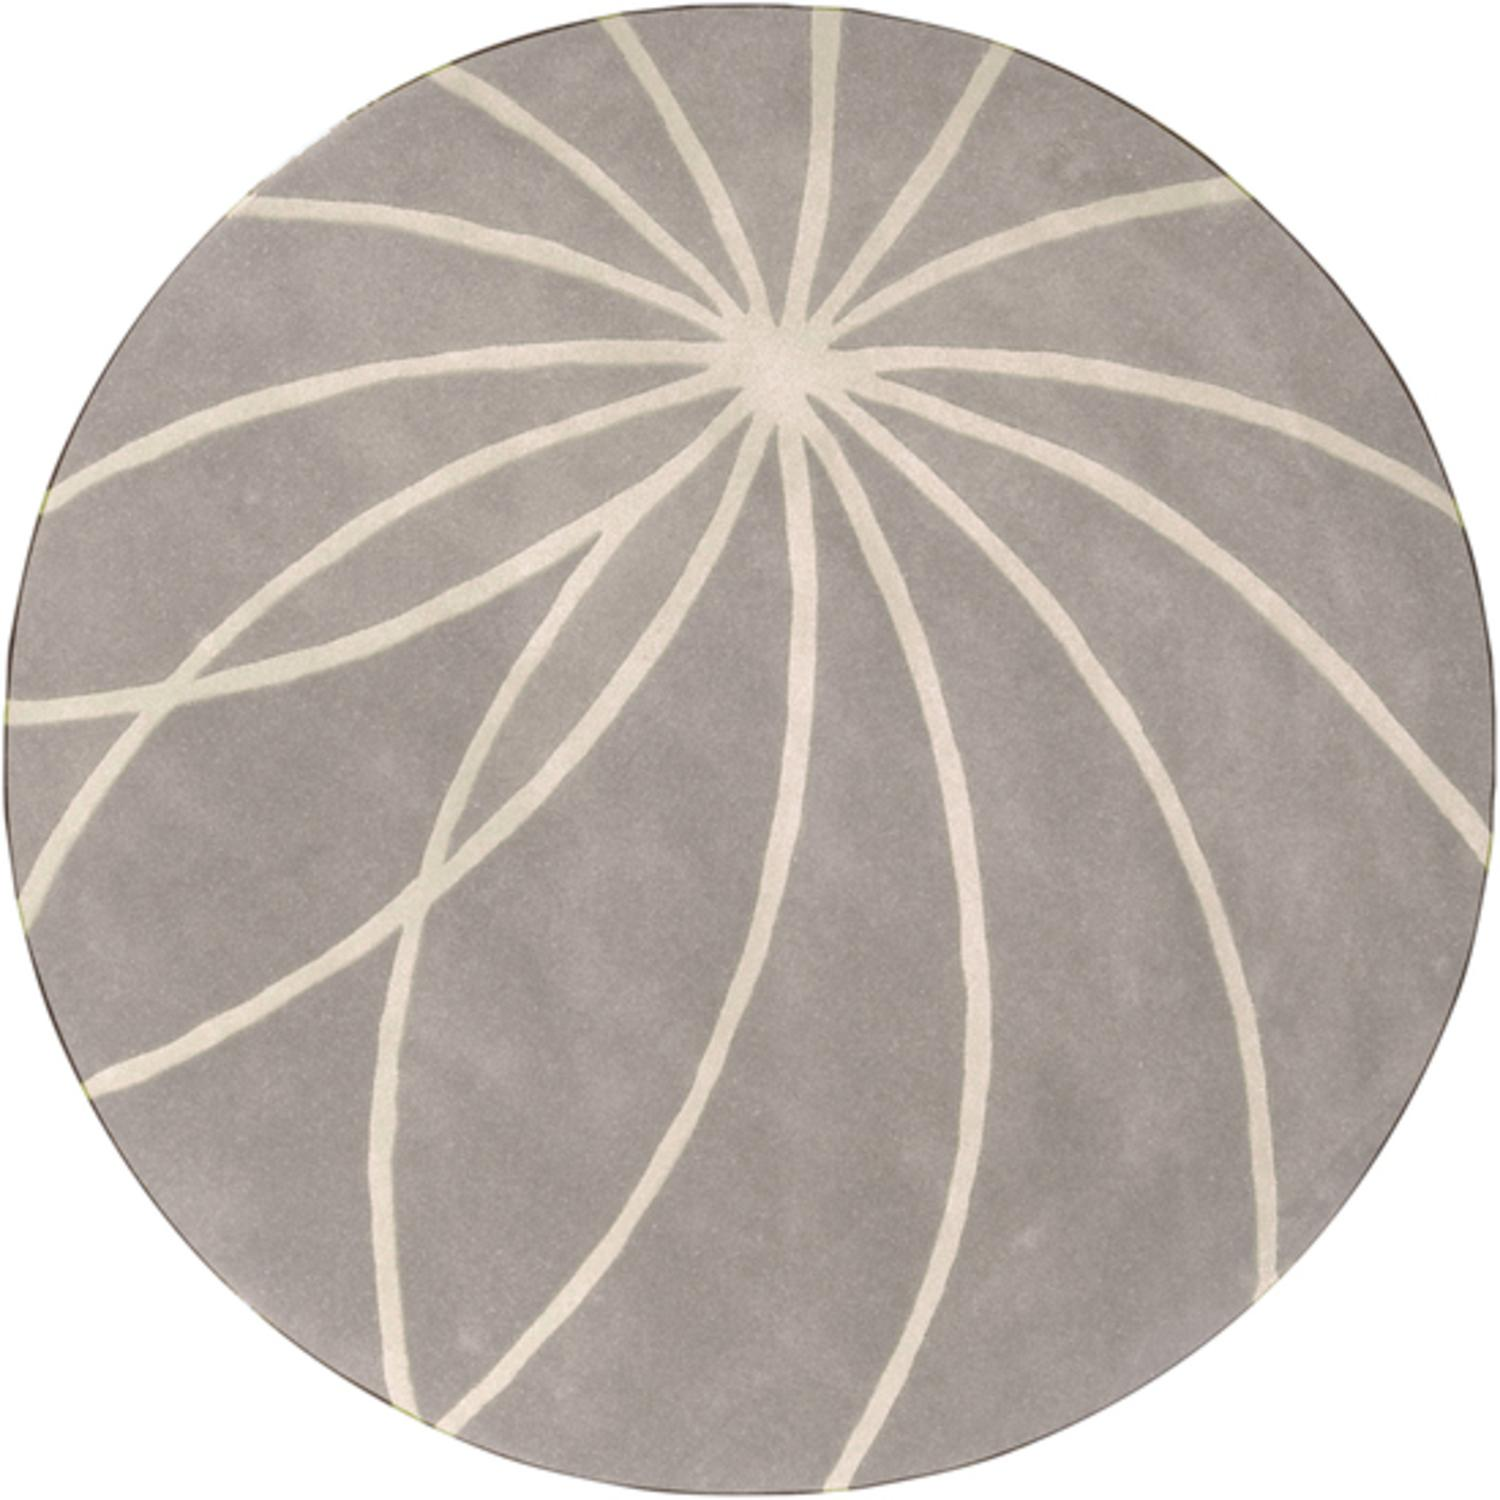 6' Plasma Elektra White and Gray Hand Tufted Wool Round Area Throw Rug